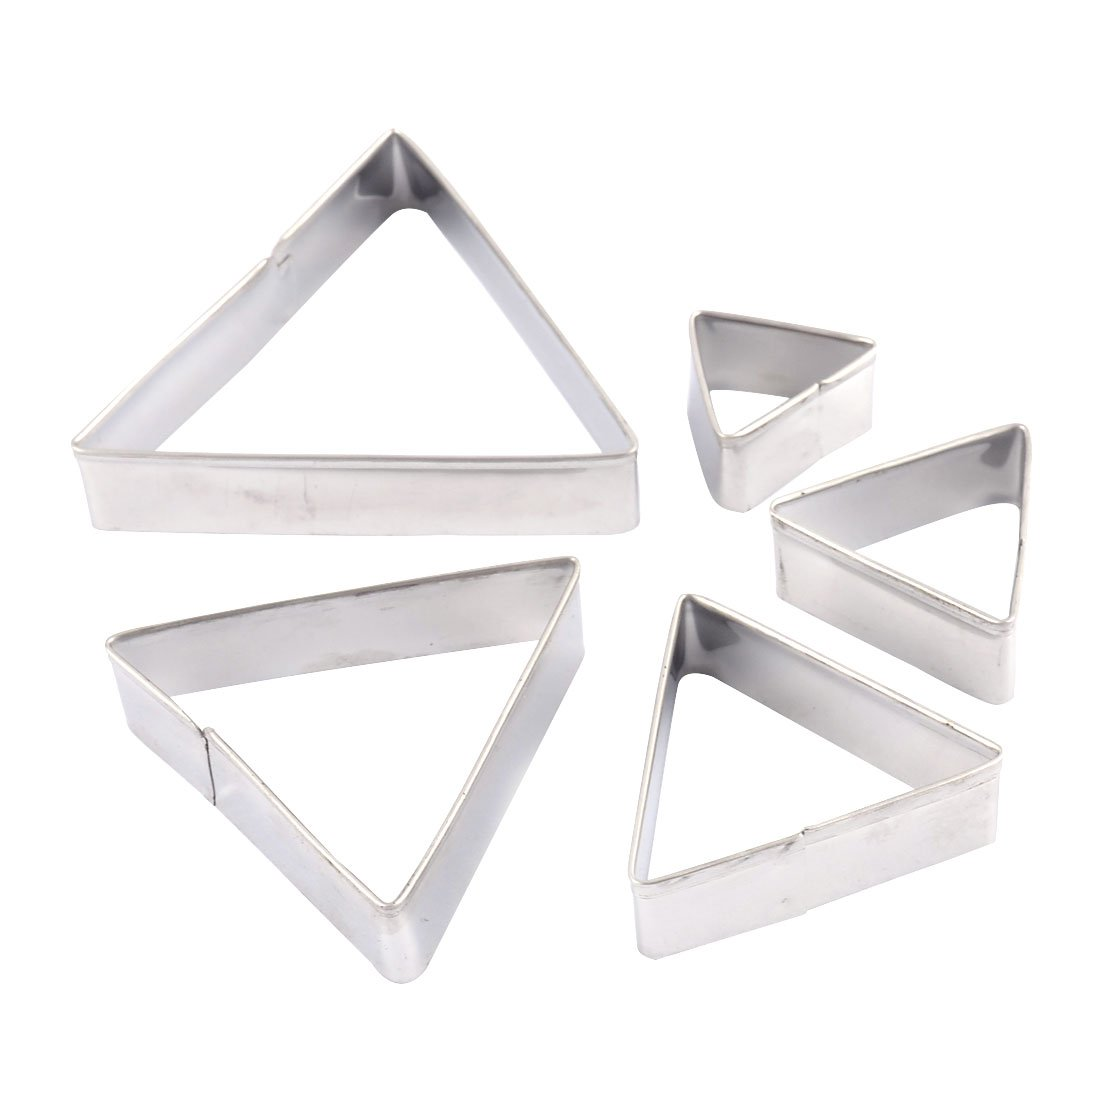 uxcell Cookie Biscuit DIY Triangle Shape Multi-size Mold Cutter Set 5 in 1 a16012100ux0067